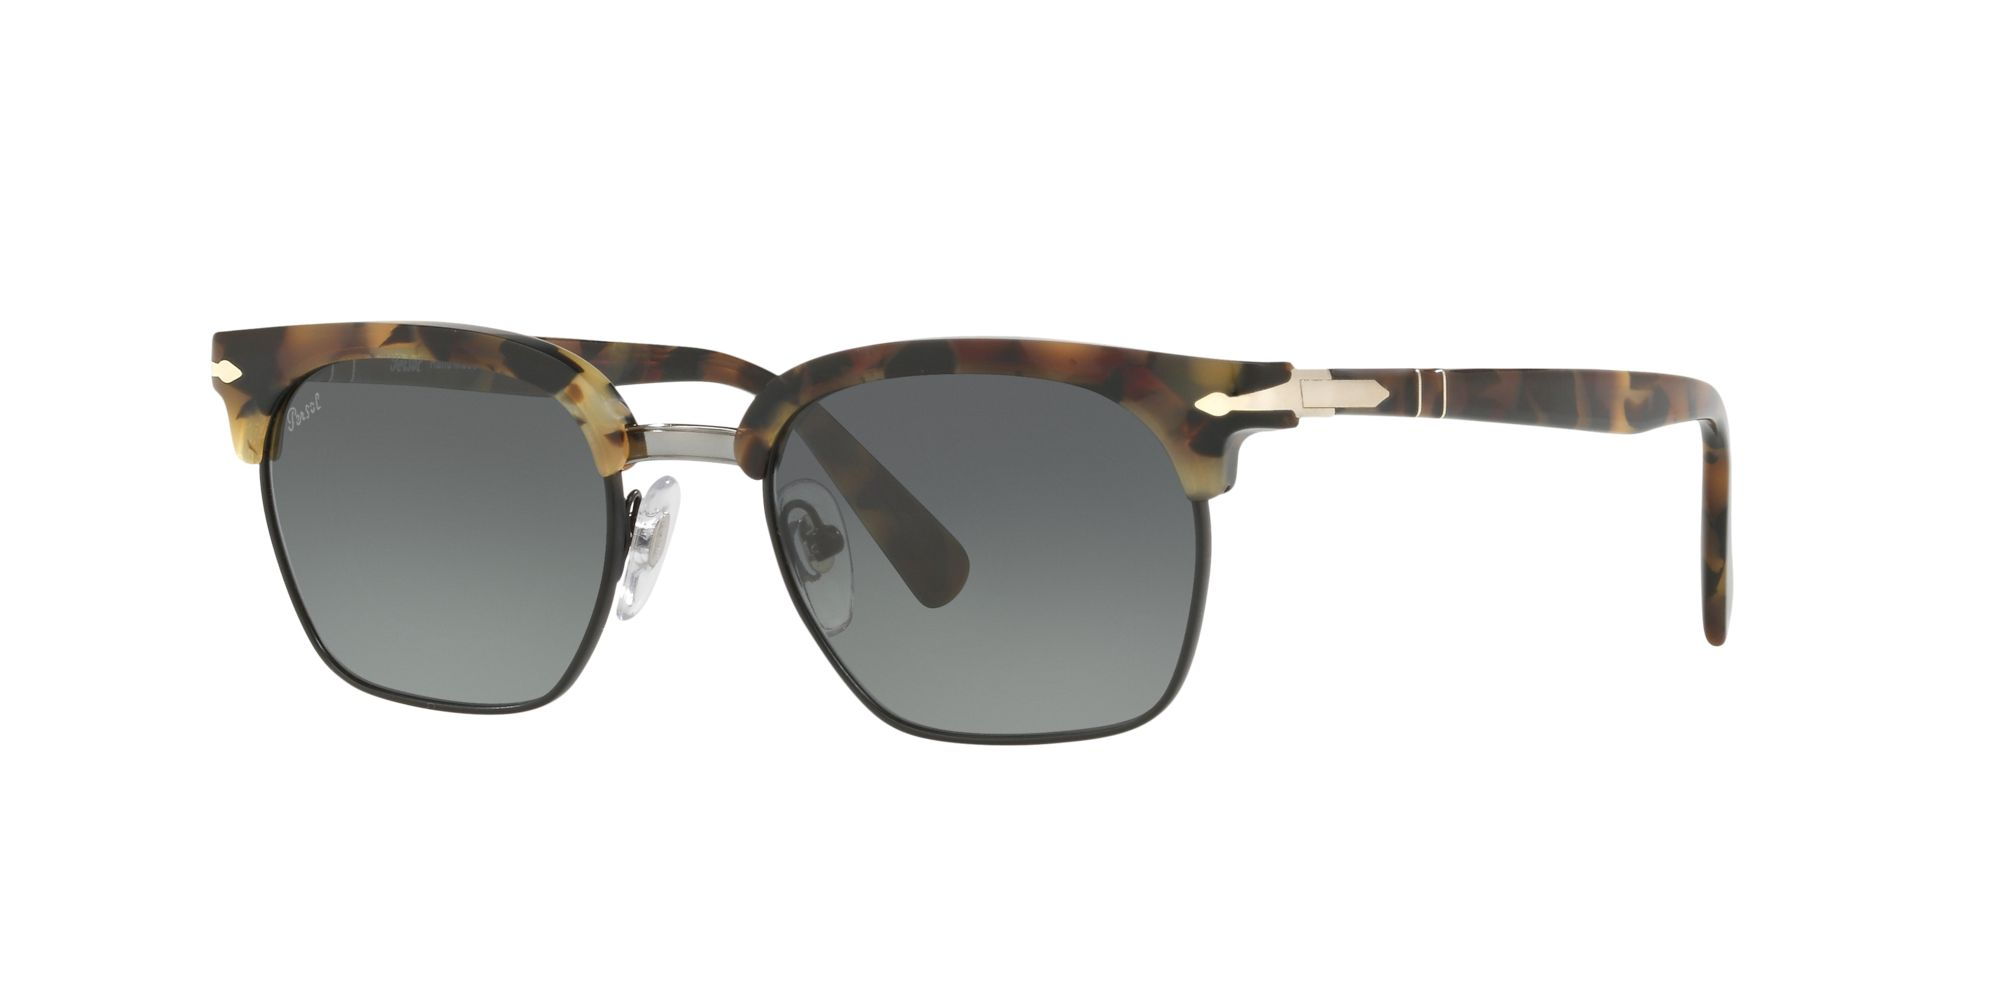 319a39ed043ed Tailoring Edition PO3199S - Brown Tortoise - Gradient Grey - Acetate ...